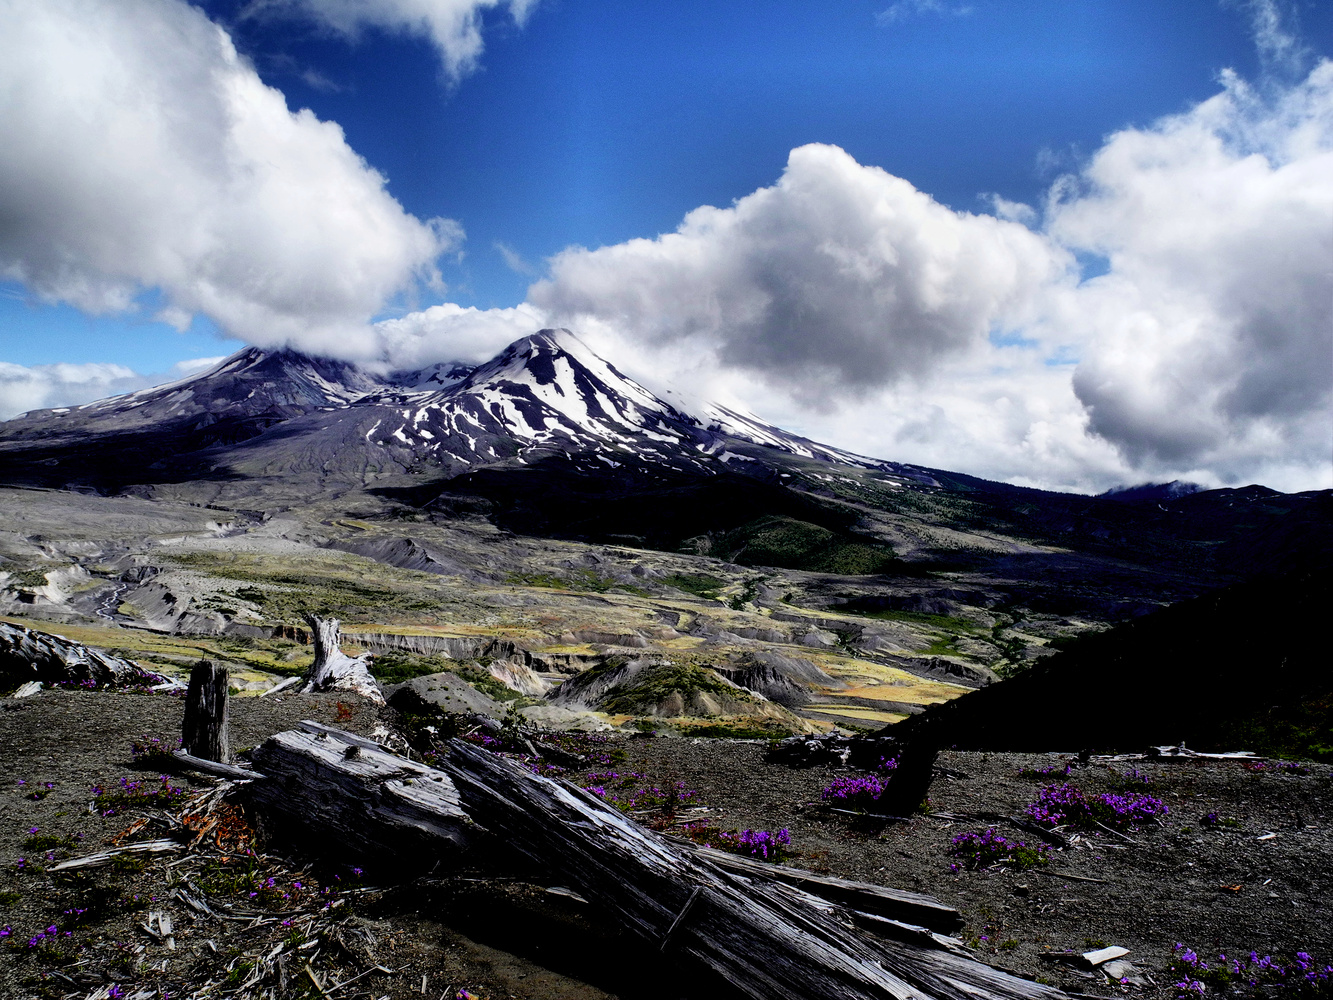 Mt. St. Helens by Amy Hunter